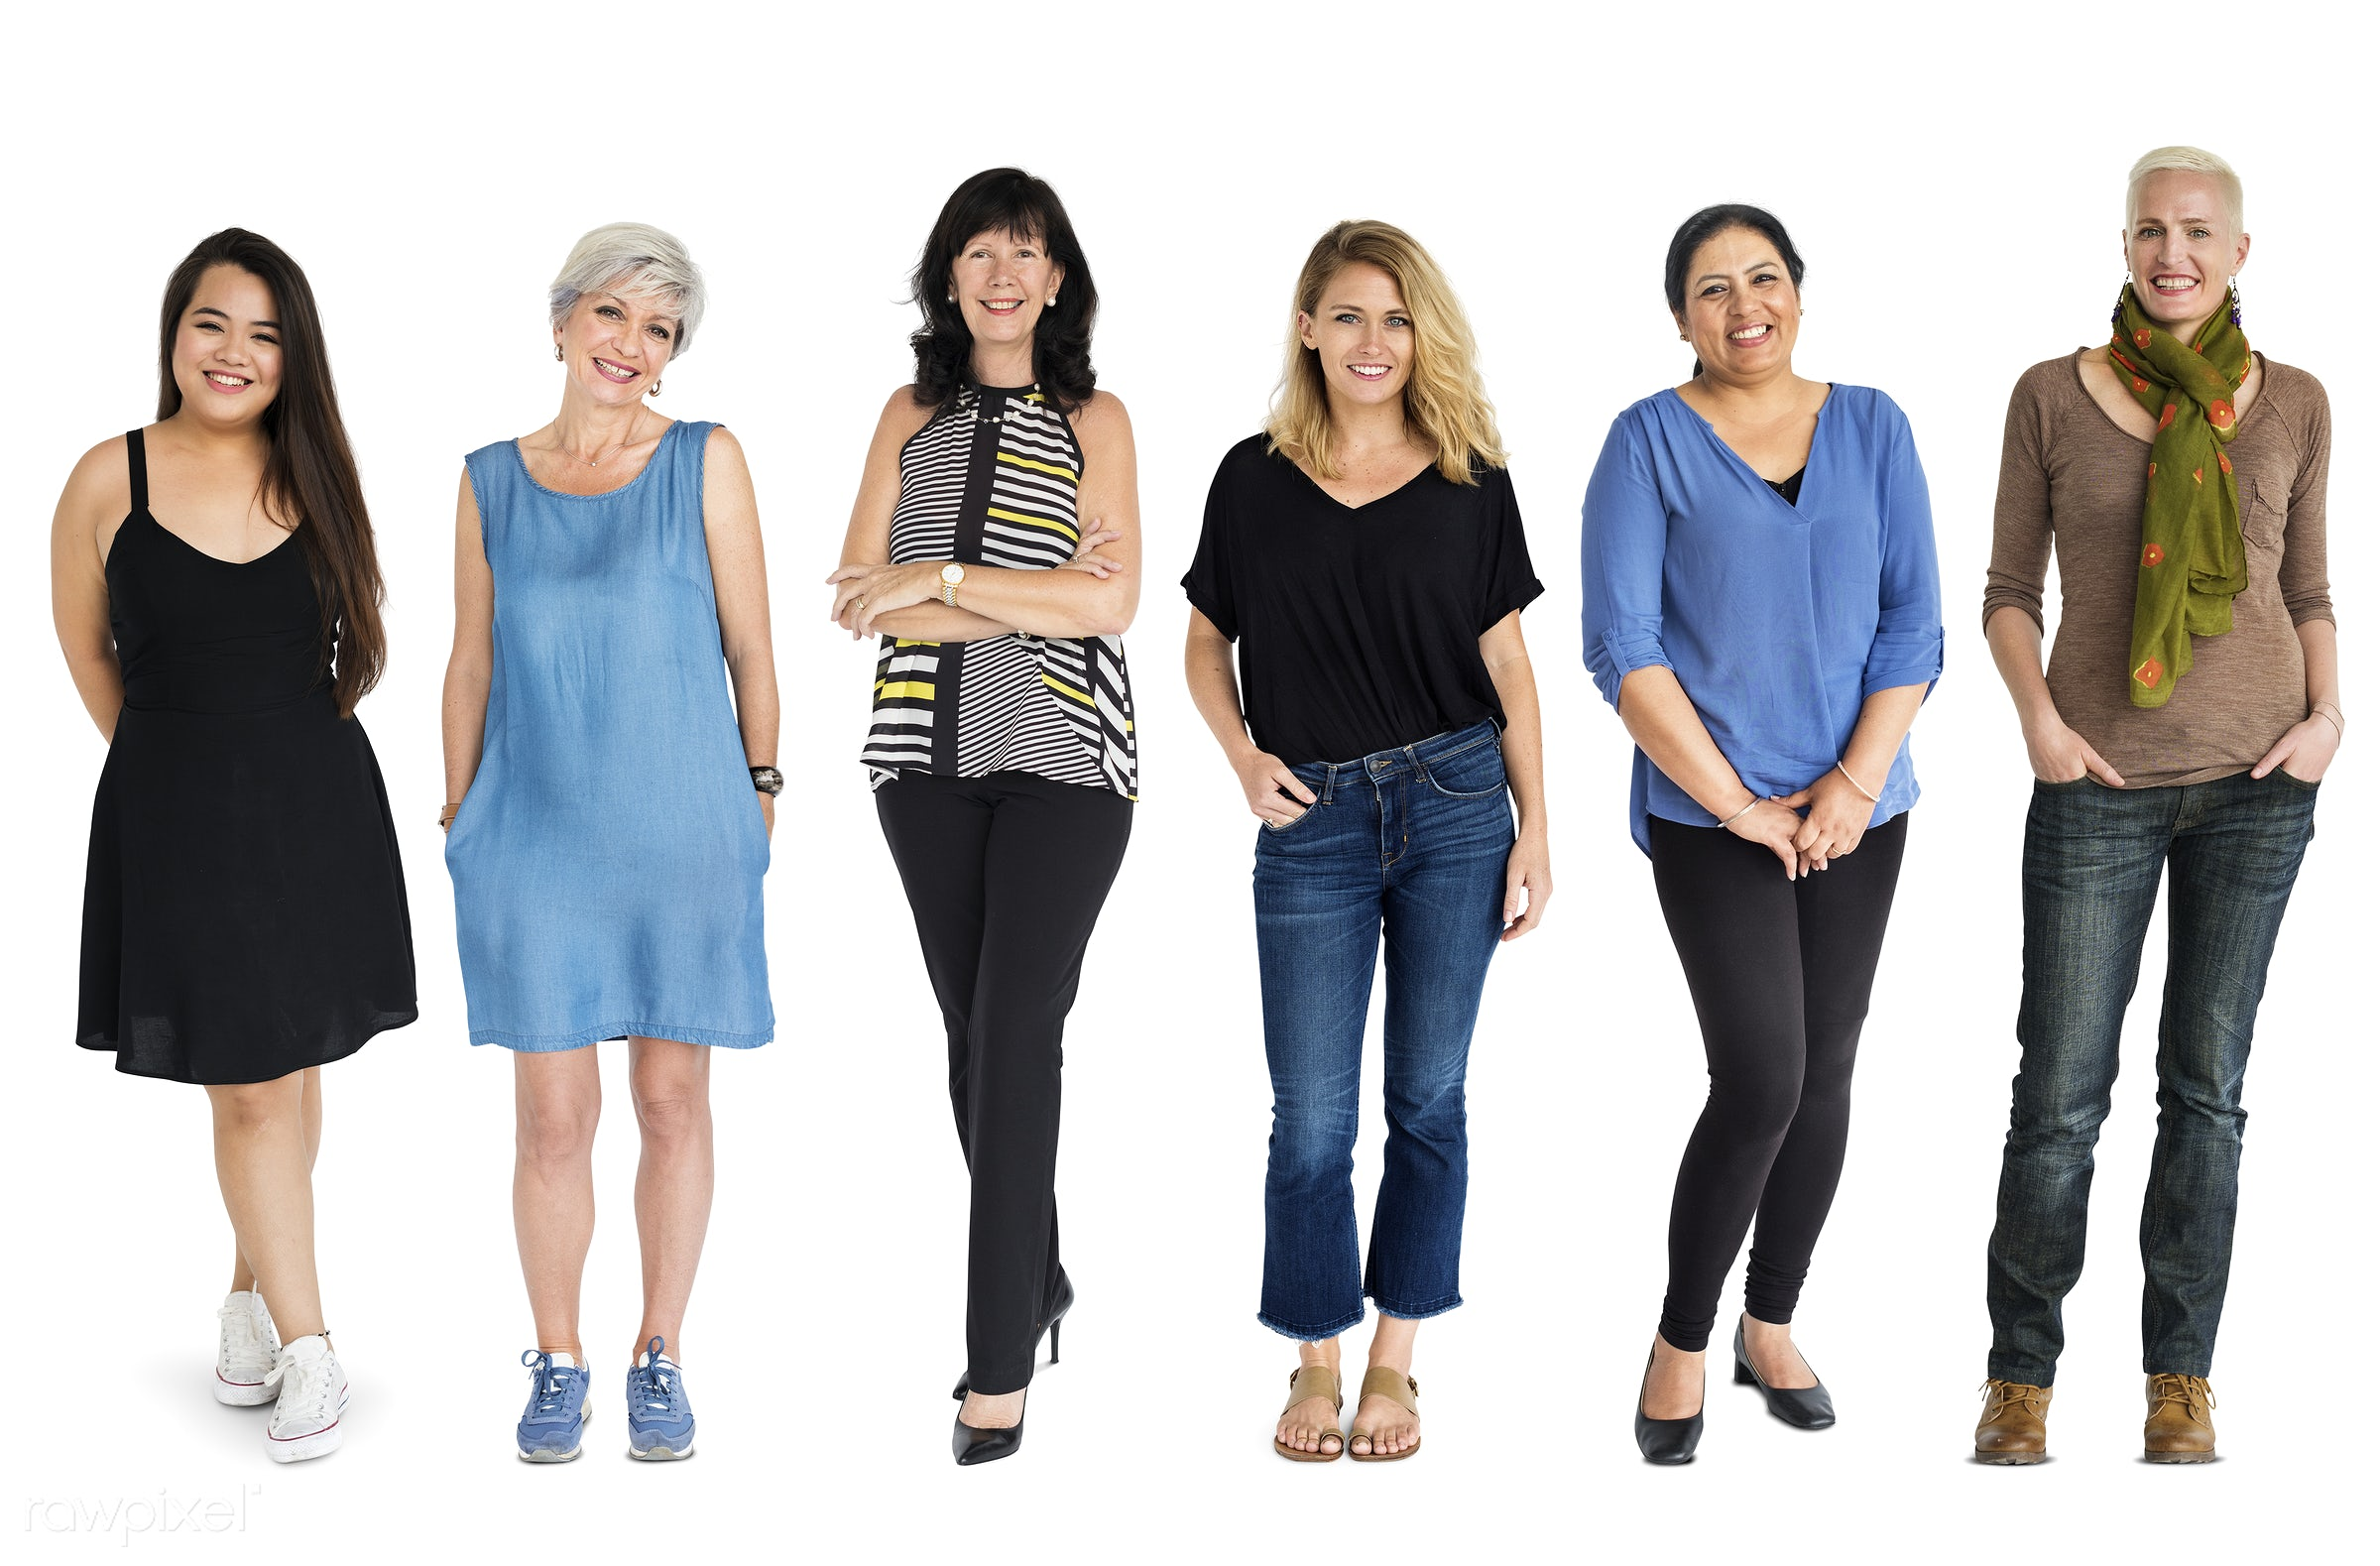 Diverse people set - studio, person, diverse, set, retired, little, collection, pretty, people, attraction, together,...